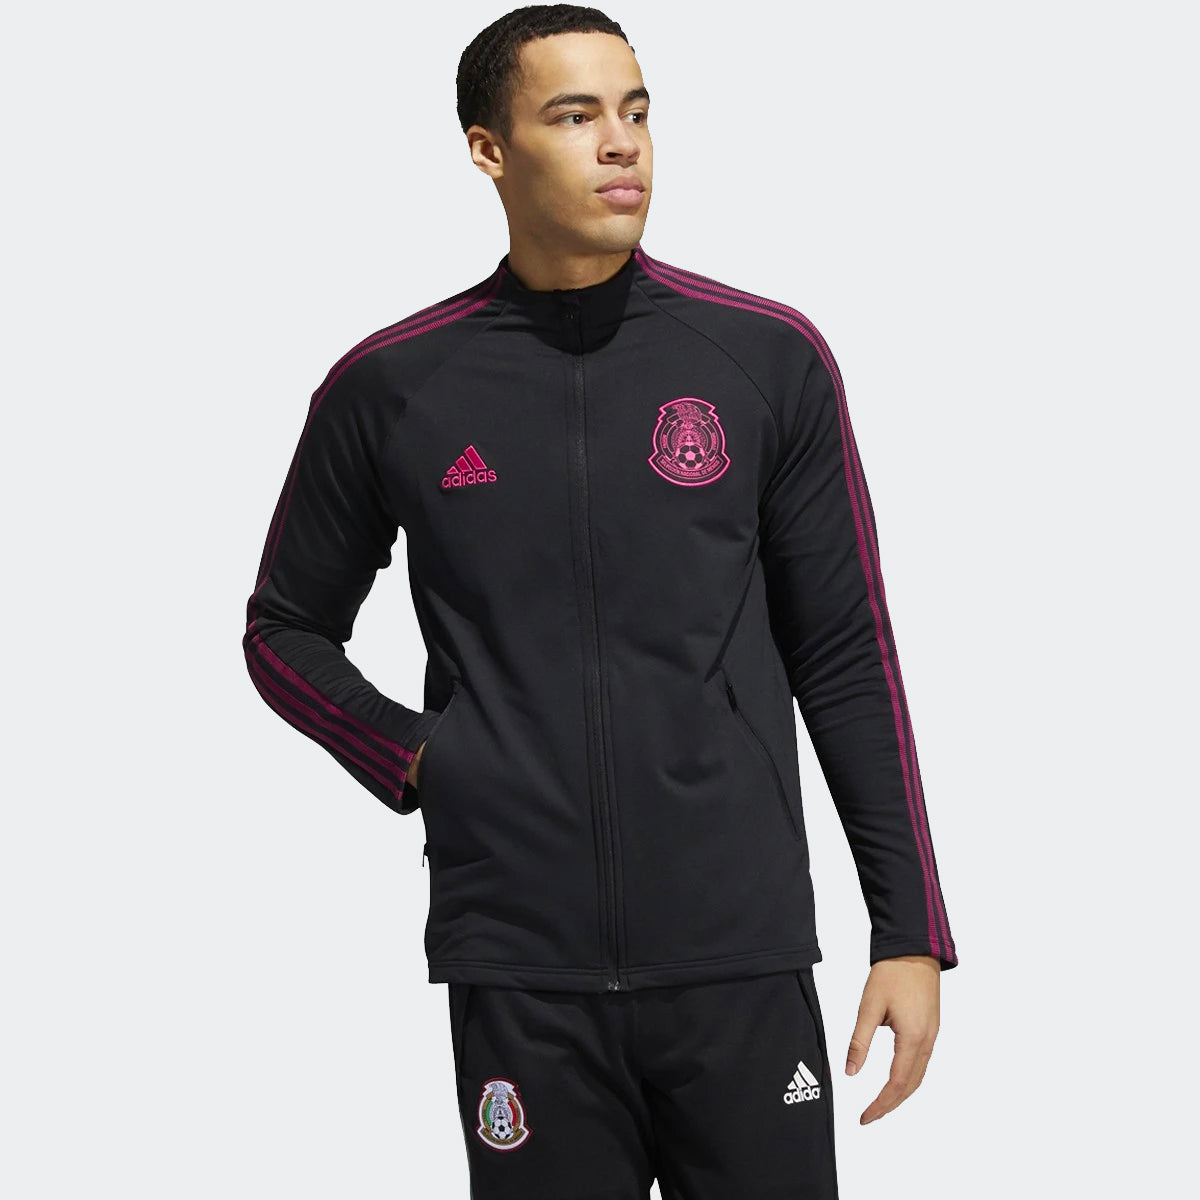 Mexico 20/21 Anthem Jacket Men's - Black